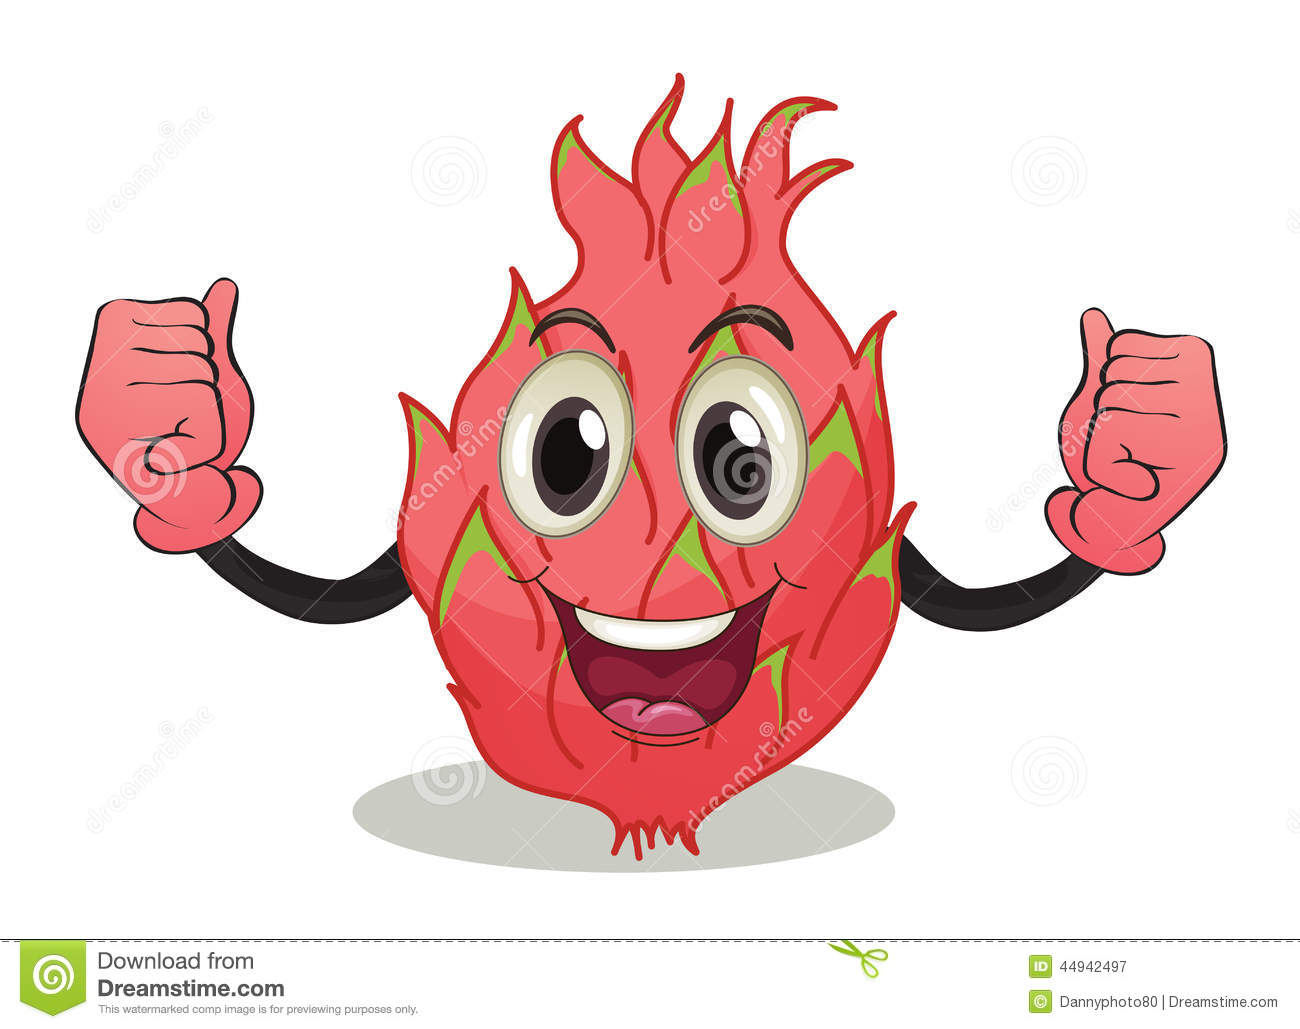 740345 together with Se Termino Juerga O Luto Para Superarl besides A Laughing Strawberry Fruit additionally Royalty Free Stock Images Tongue Image17437699 further Do You Mind. on sour face cartoon